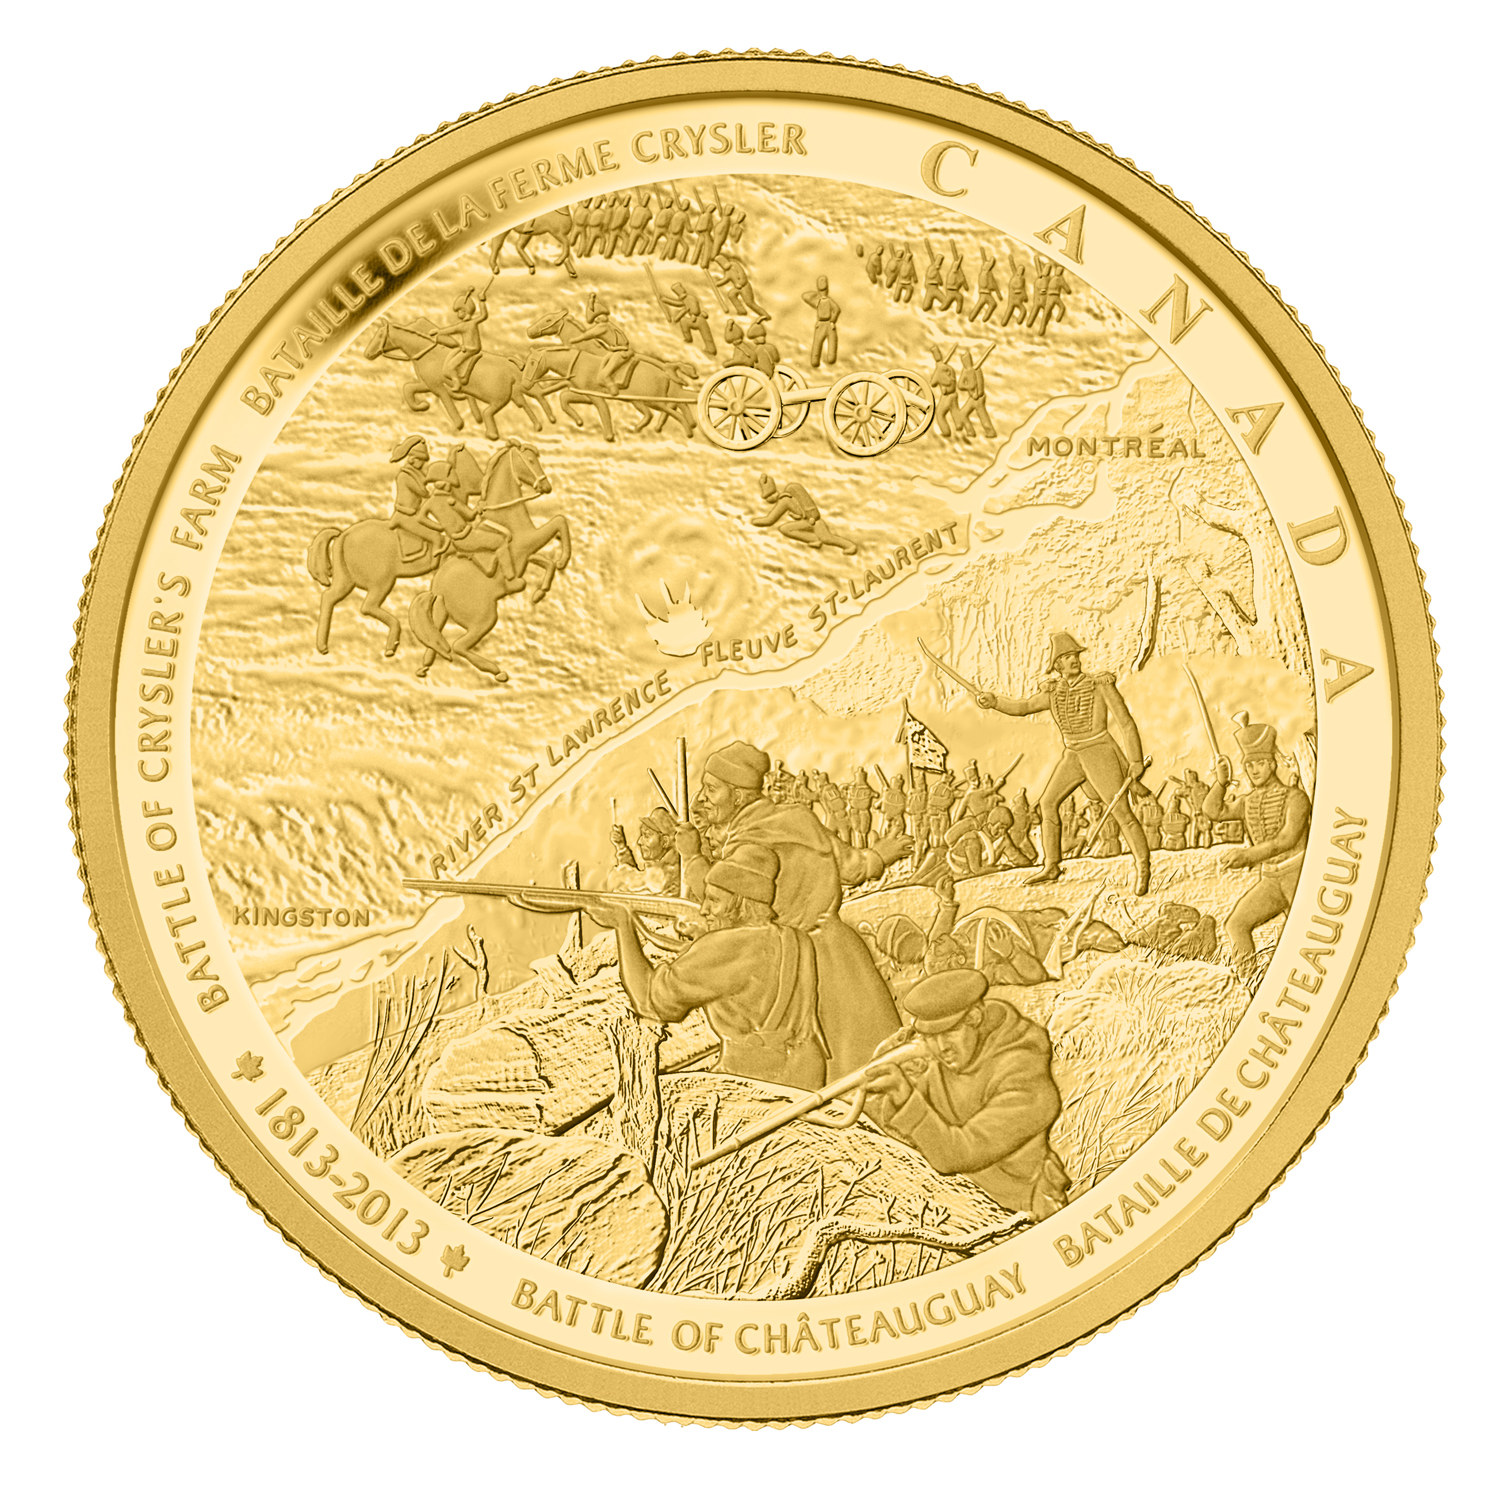 2013 Can 1 kilo Prf Gold $2,500 War of 1812 Battle of Chateauguay